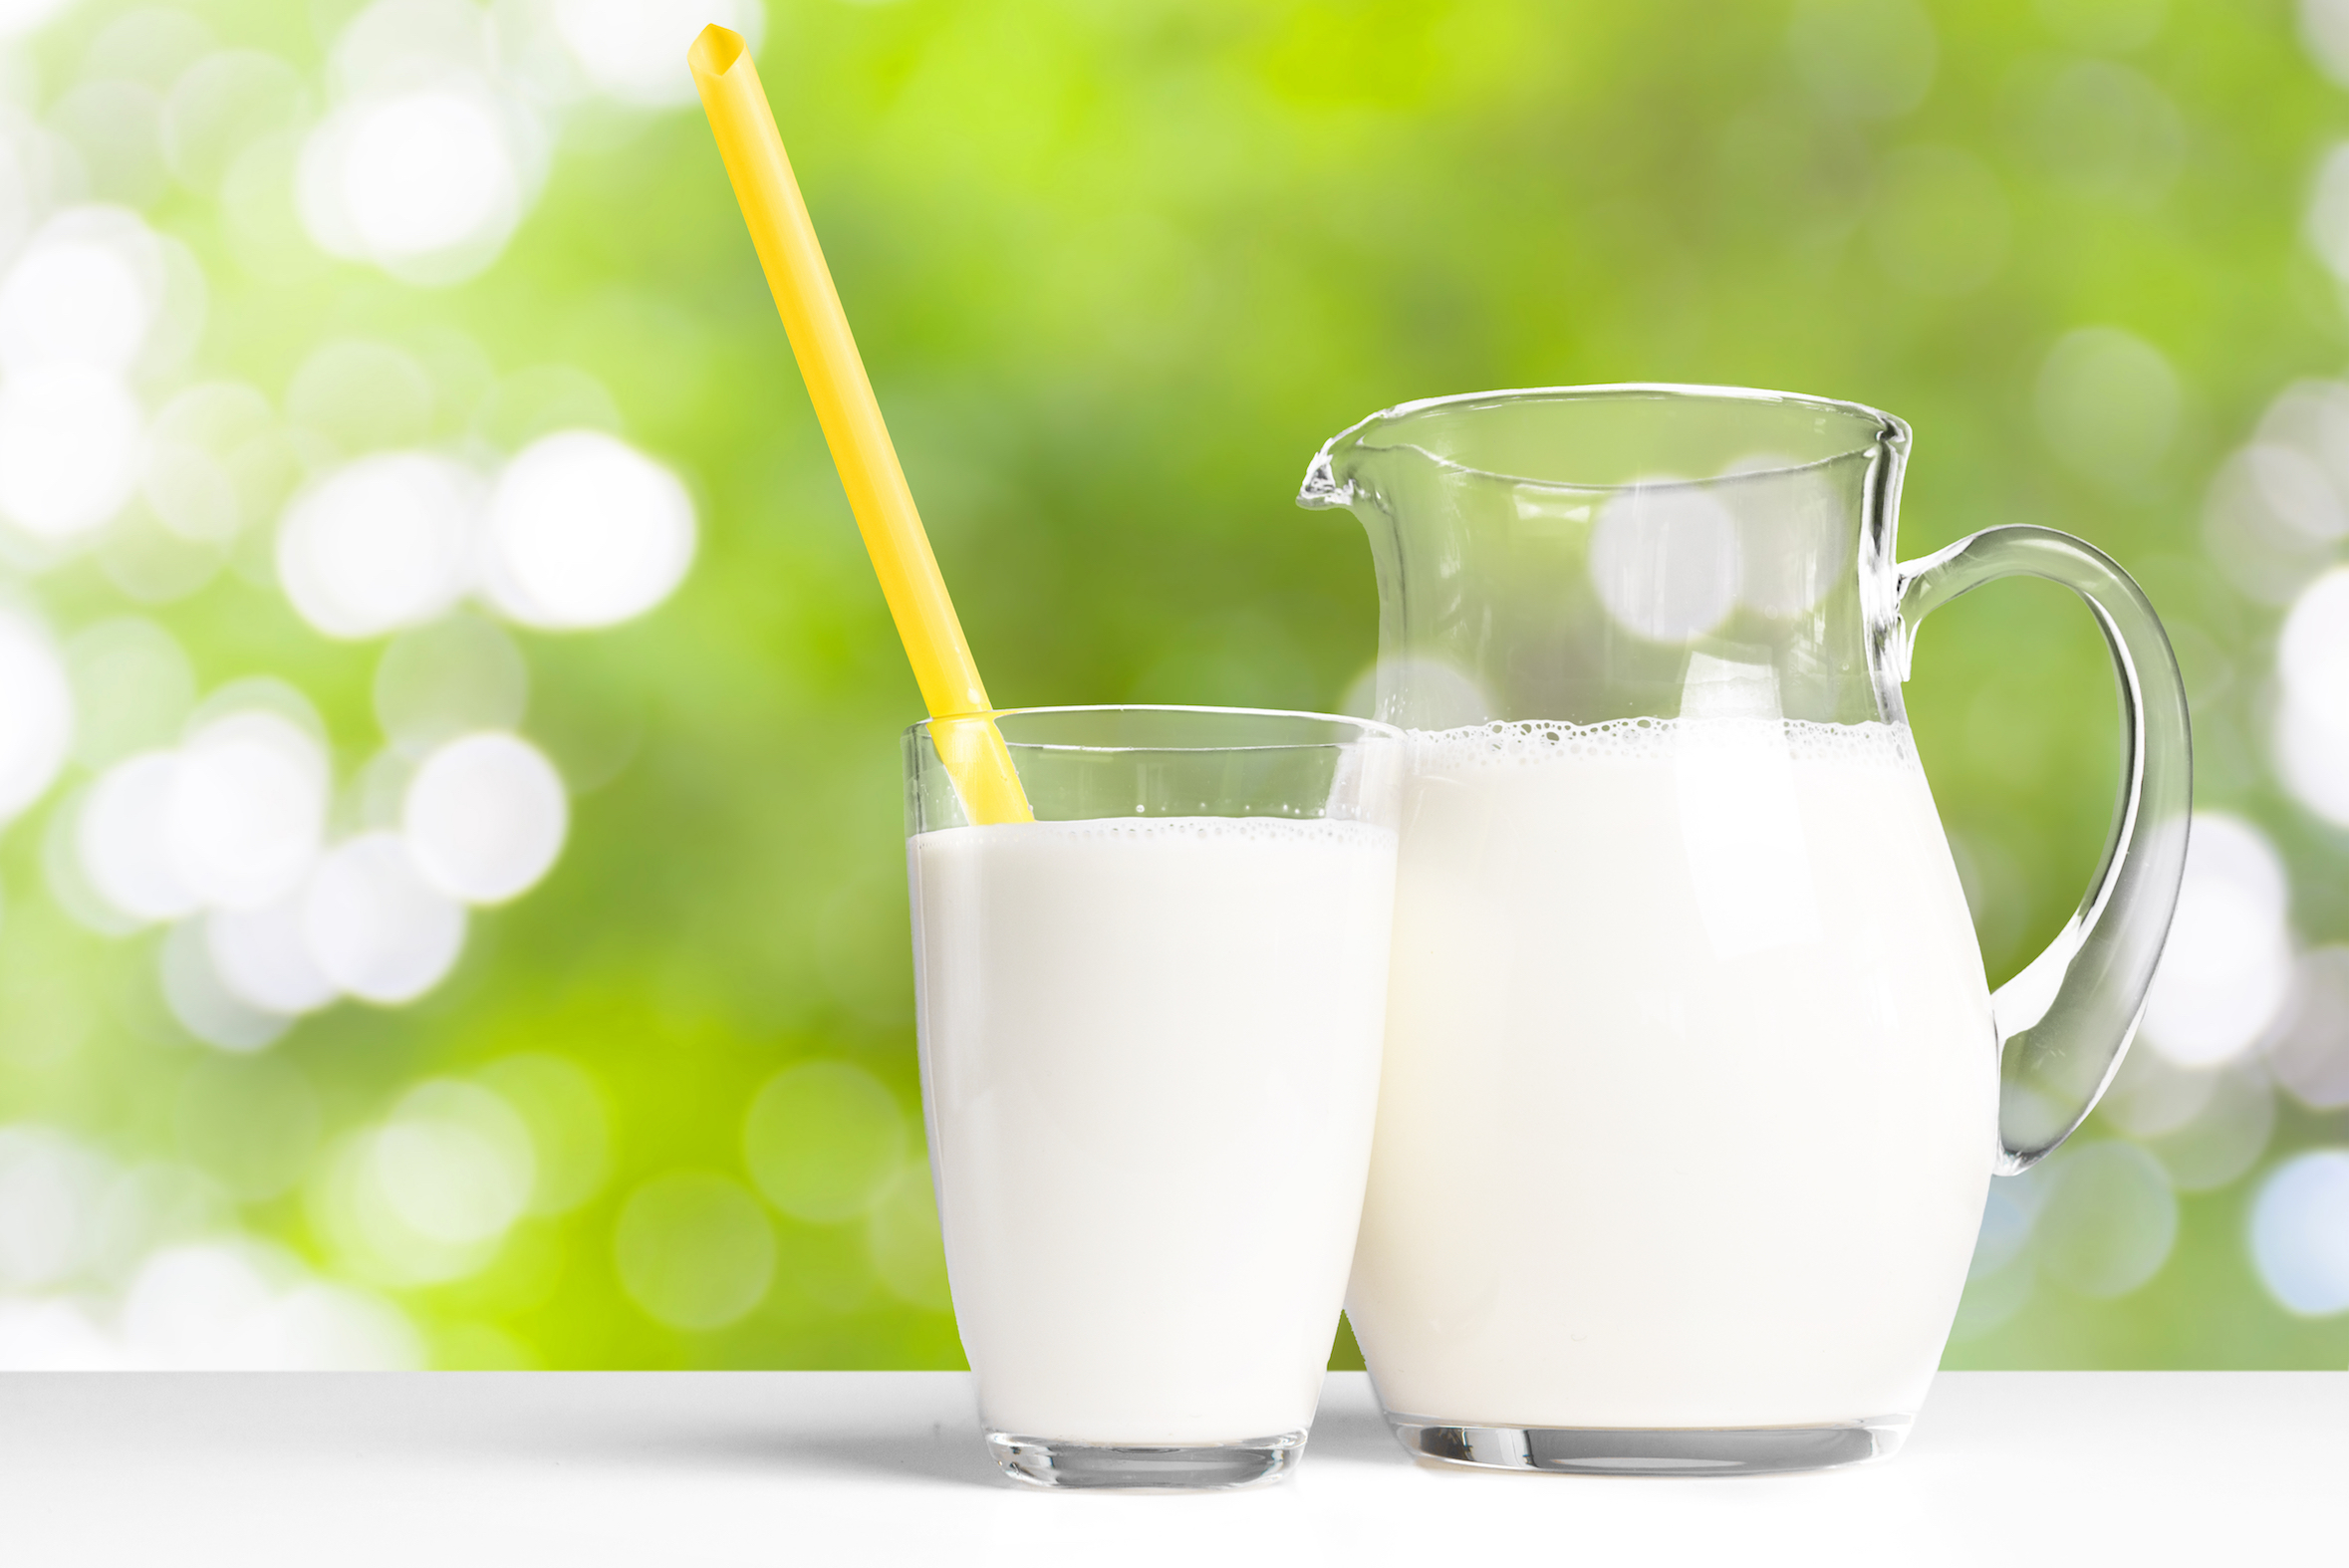 Milk is more hydrating than water, study shows • Earth.com